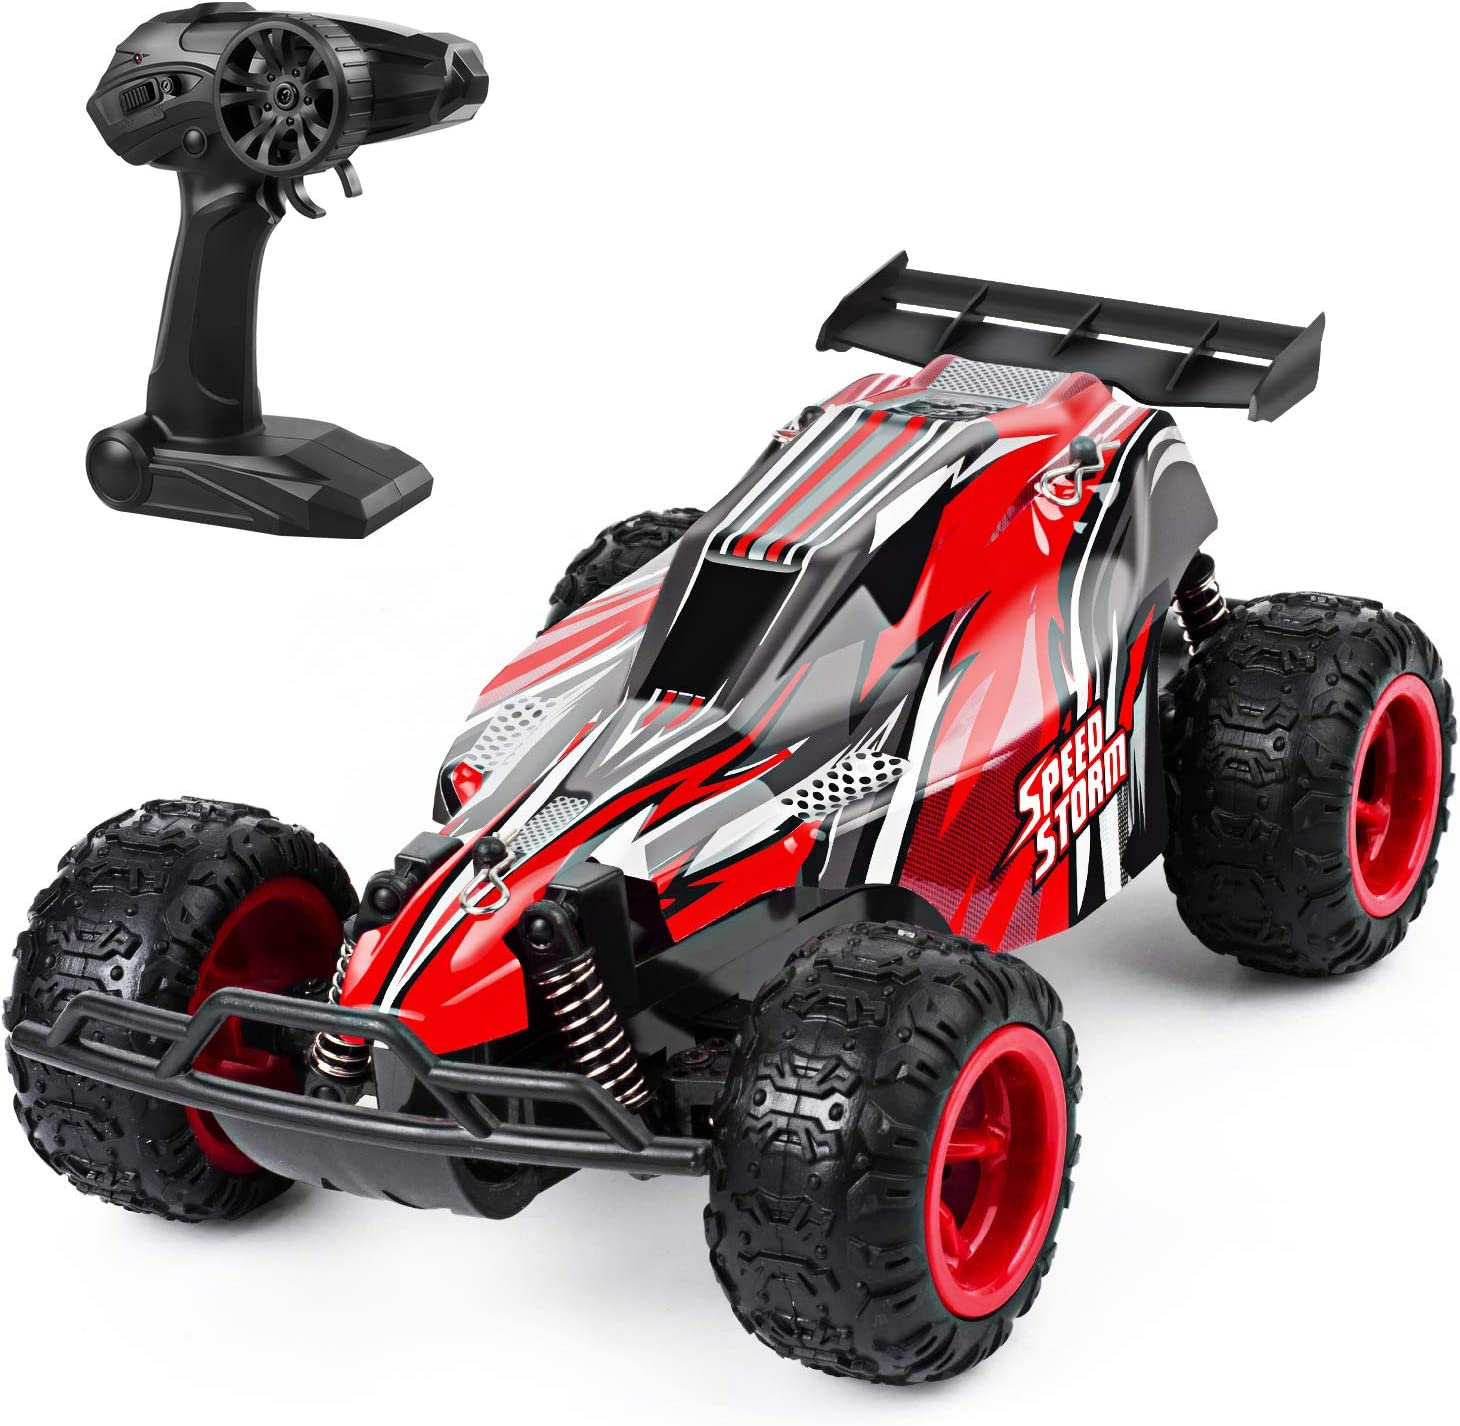 Amazon Com Jeypod Remote Control Car 2 4 Ghz High Speed Racing Rc Car With 4 Batteries Kids Toys Red Toys Games